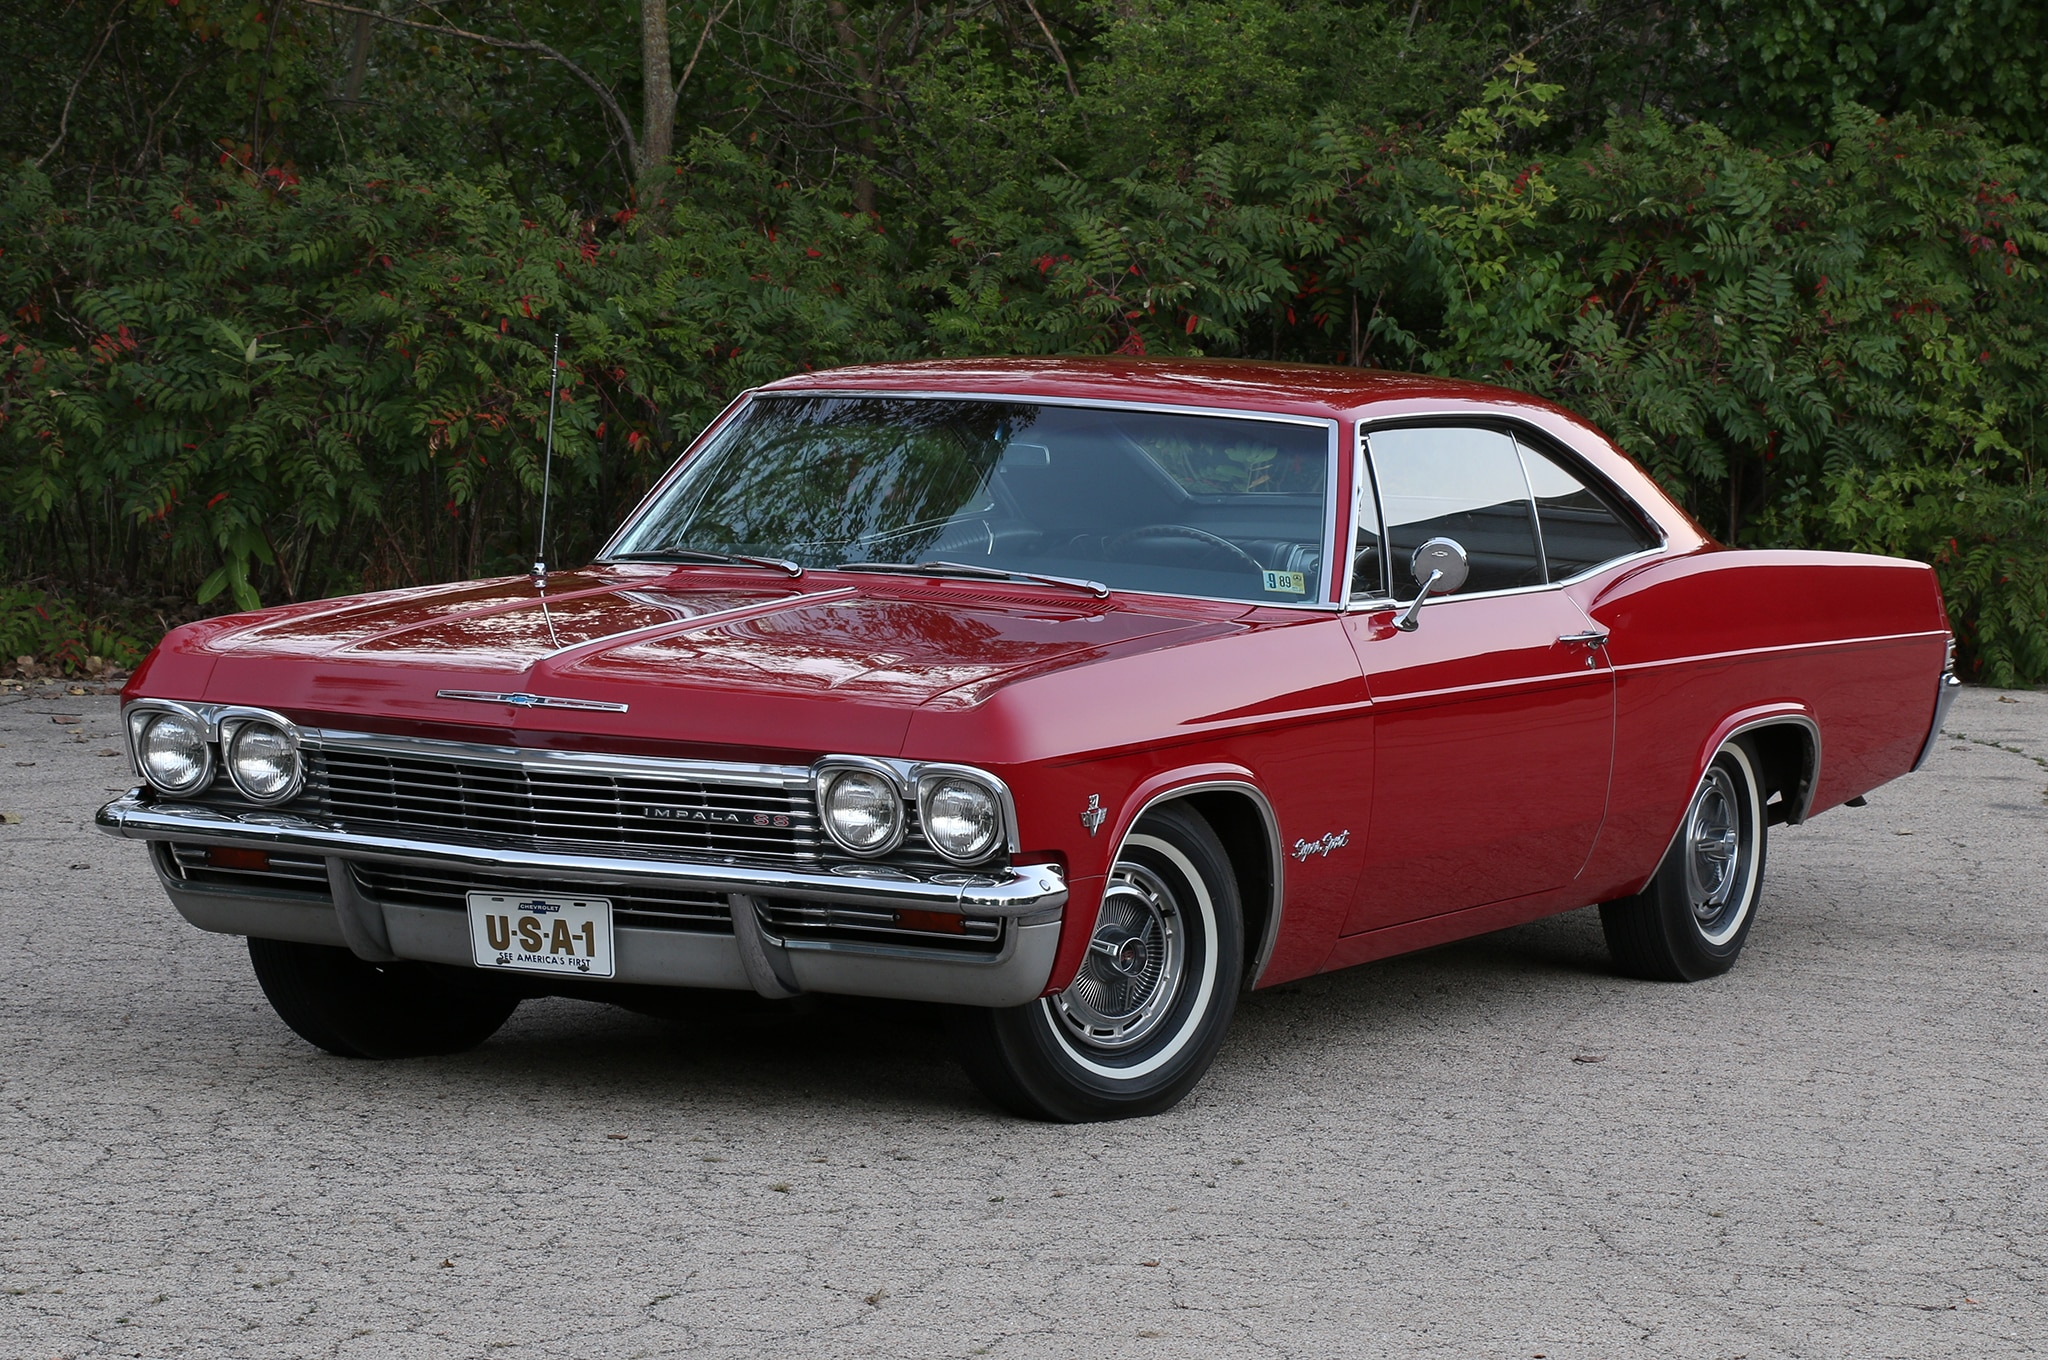 Cool Old Cars Wallpapers Immaculate Unrestored 1965 Chevrolet Impala Ss Shows Just